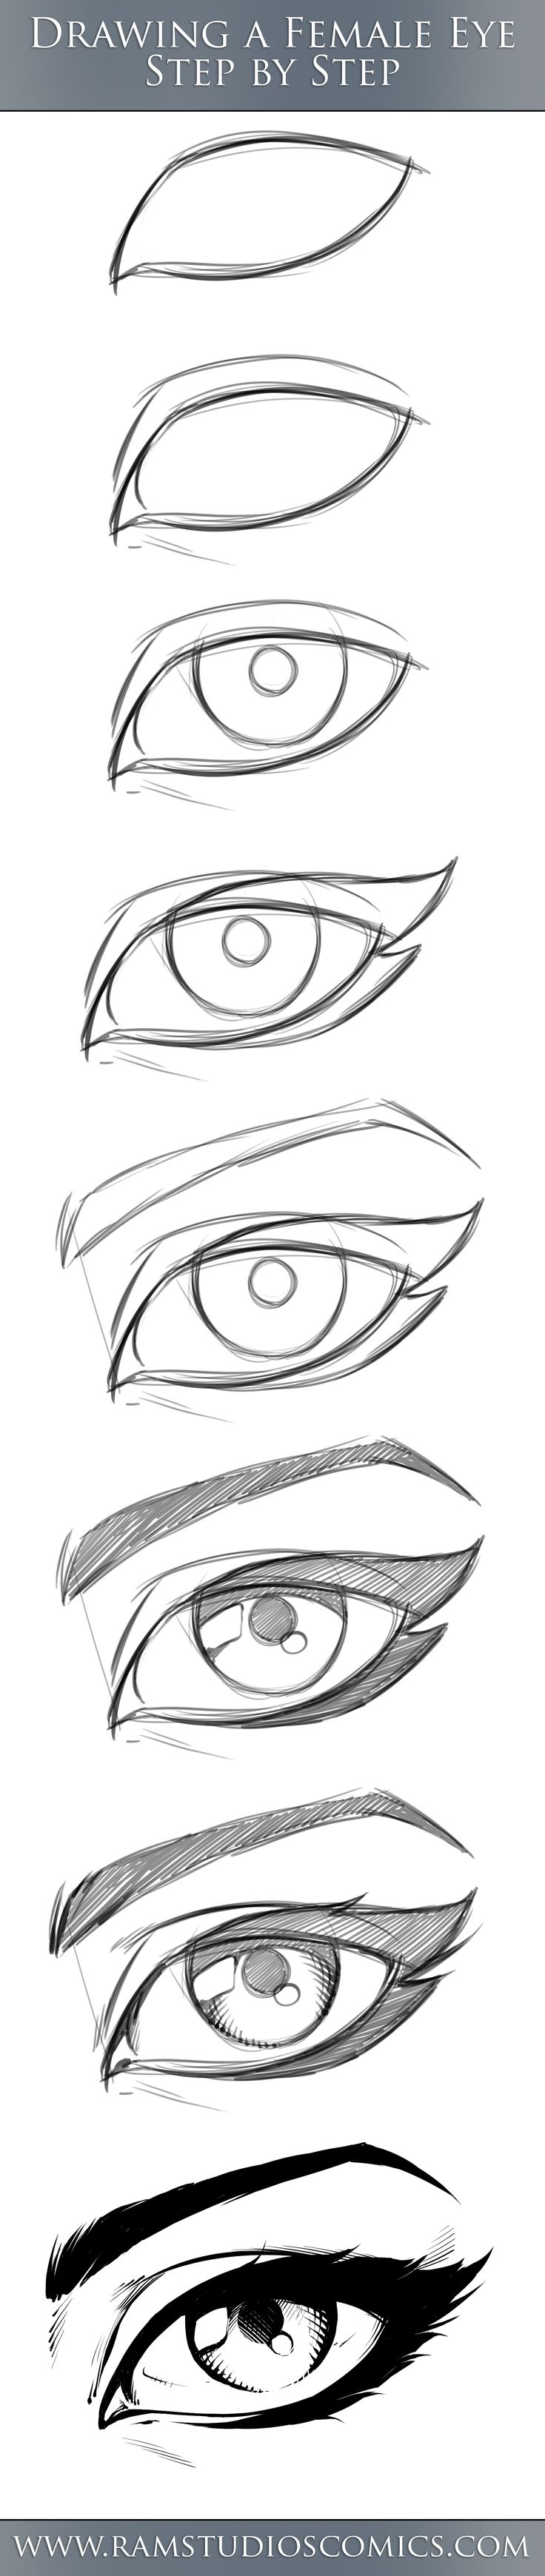 female_comic_eye_tutorial___step_by_step_by_robertmarzullo-dbmp3v2.jpg (1722×8143)